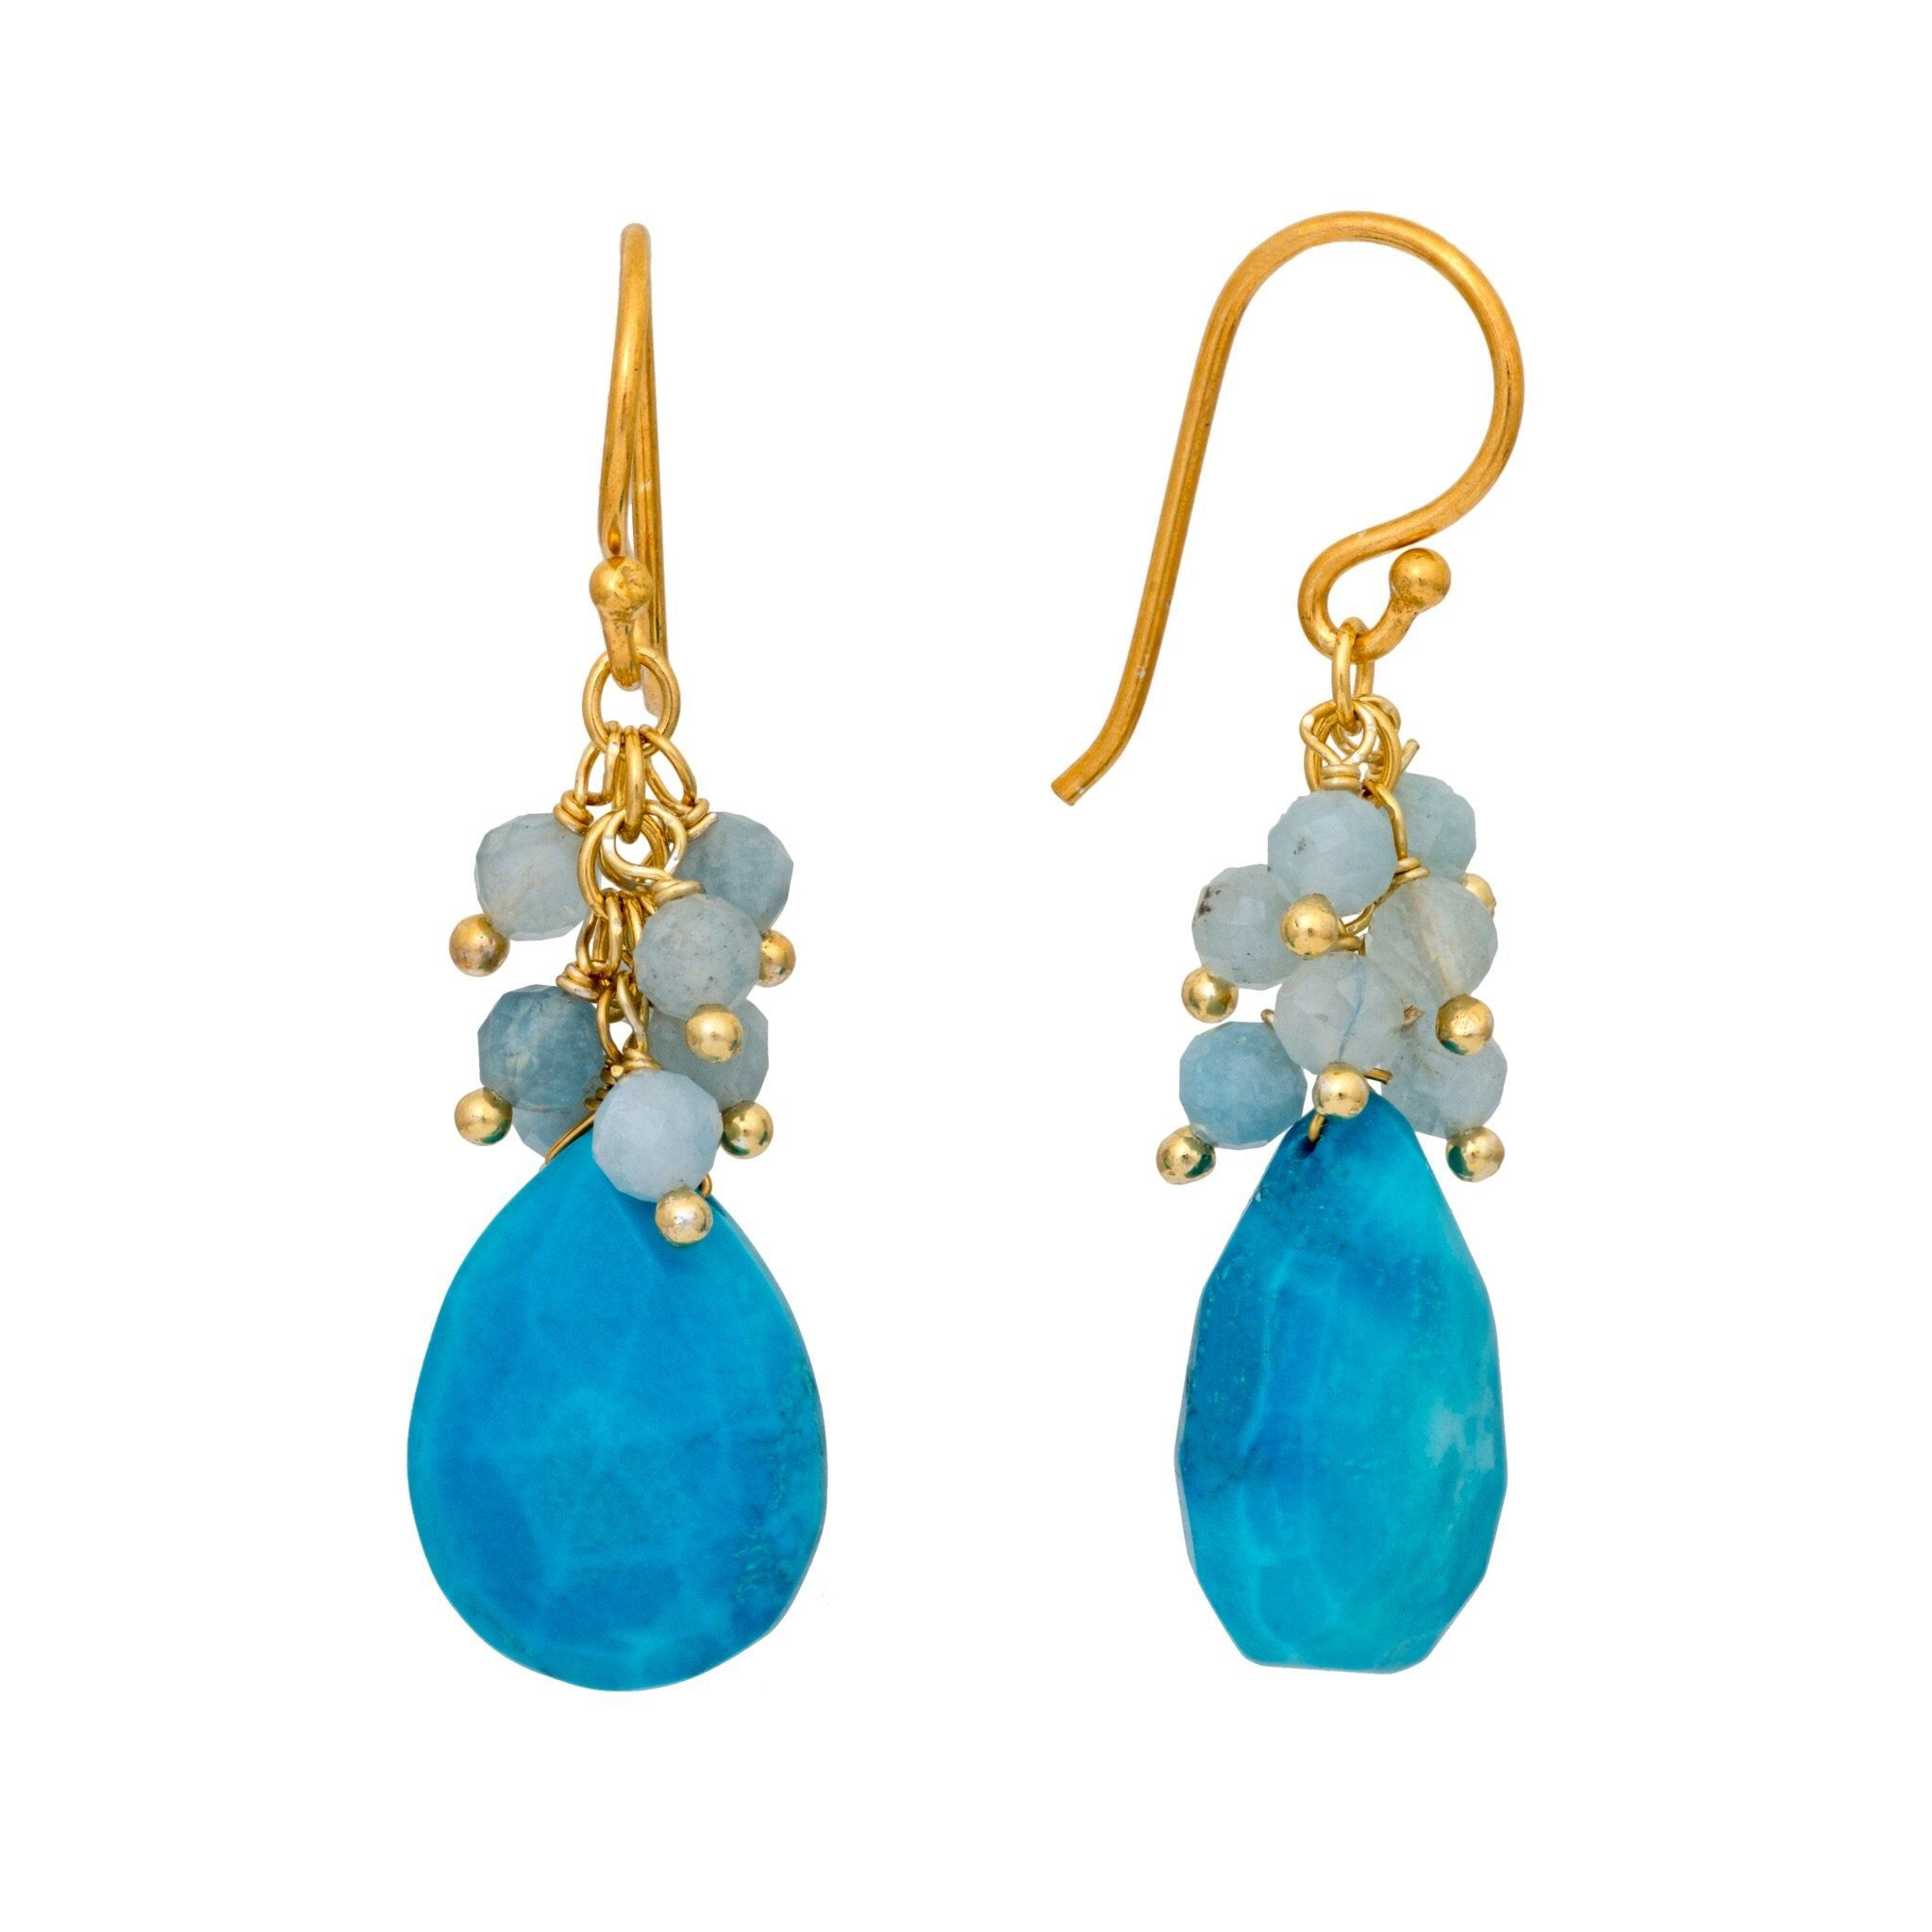 GRAPA turquoise earrings